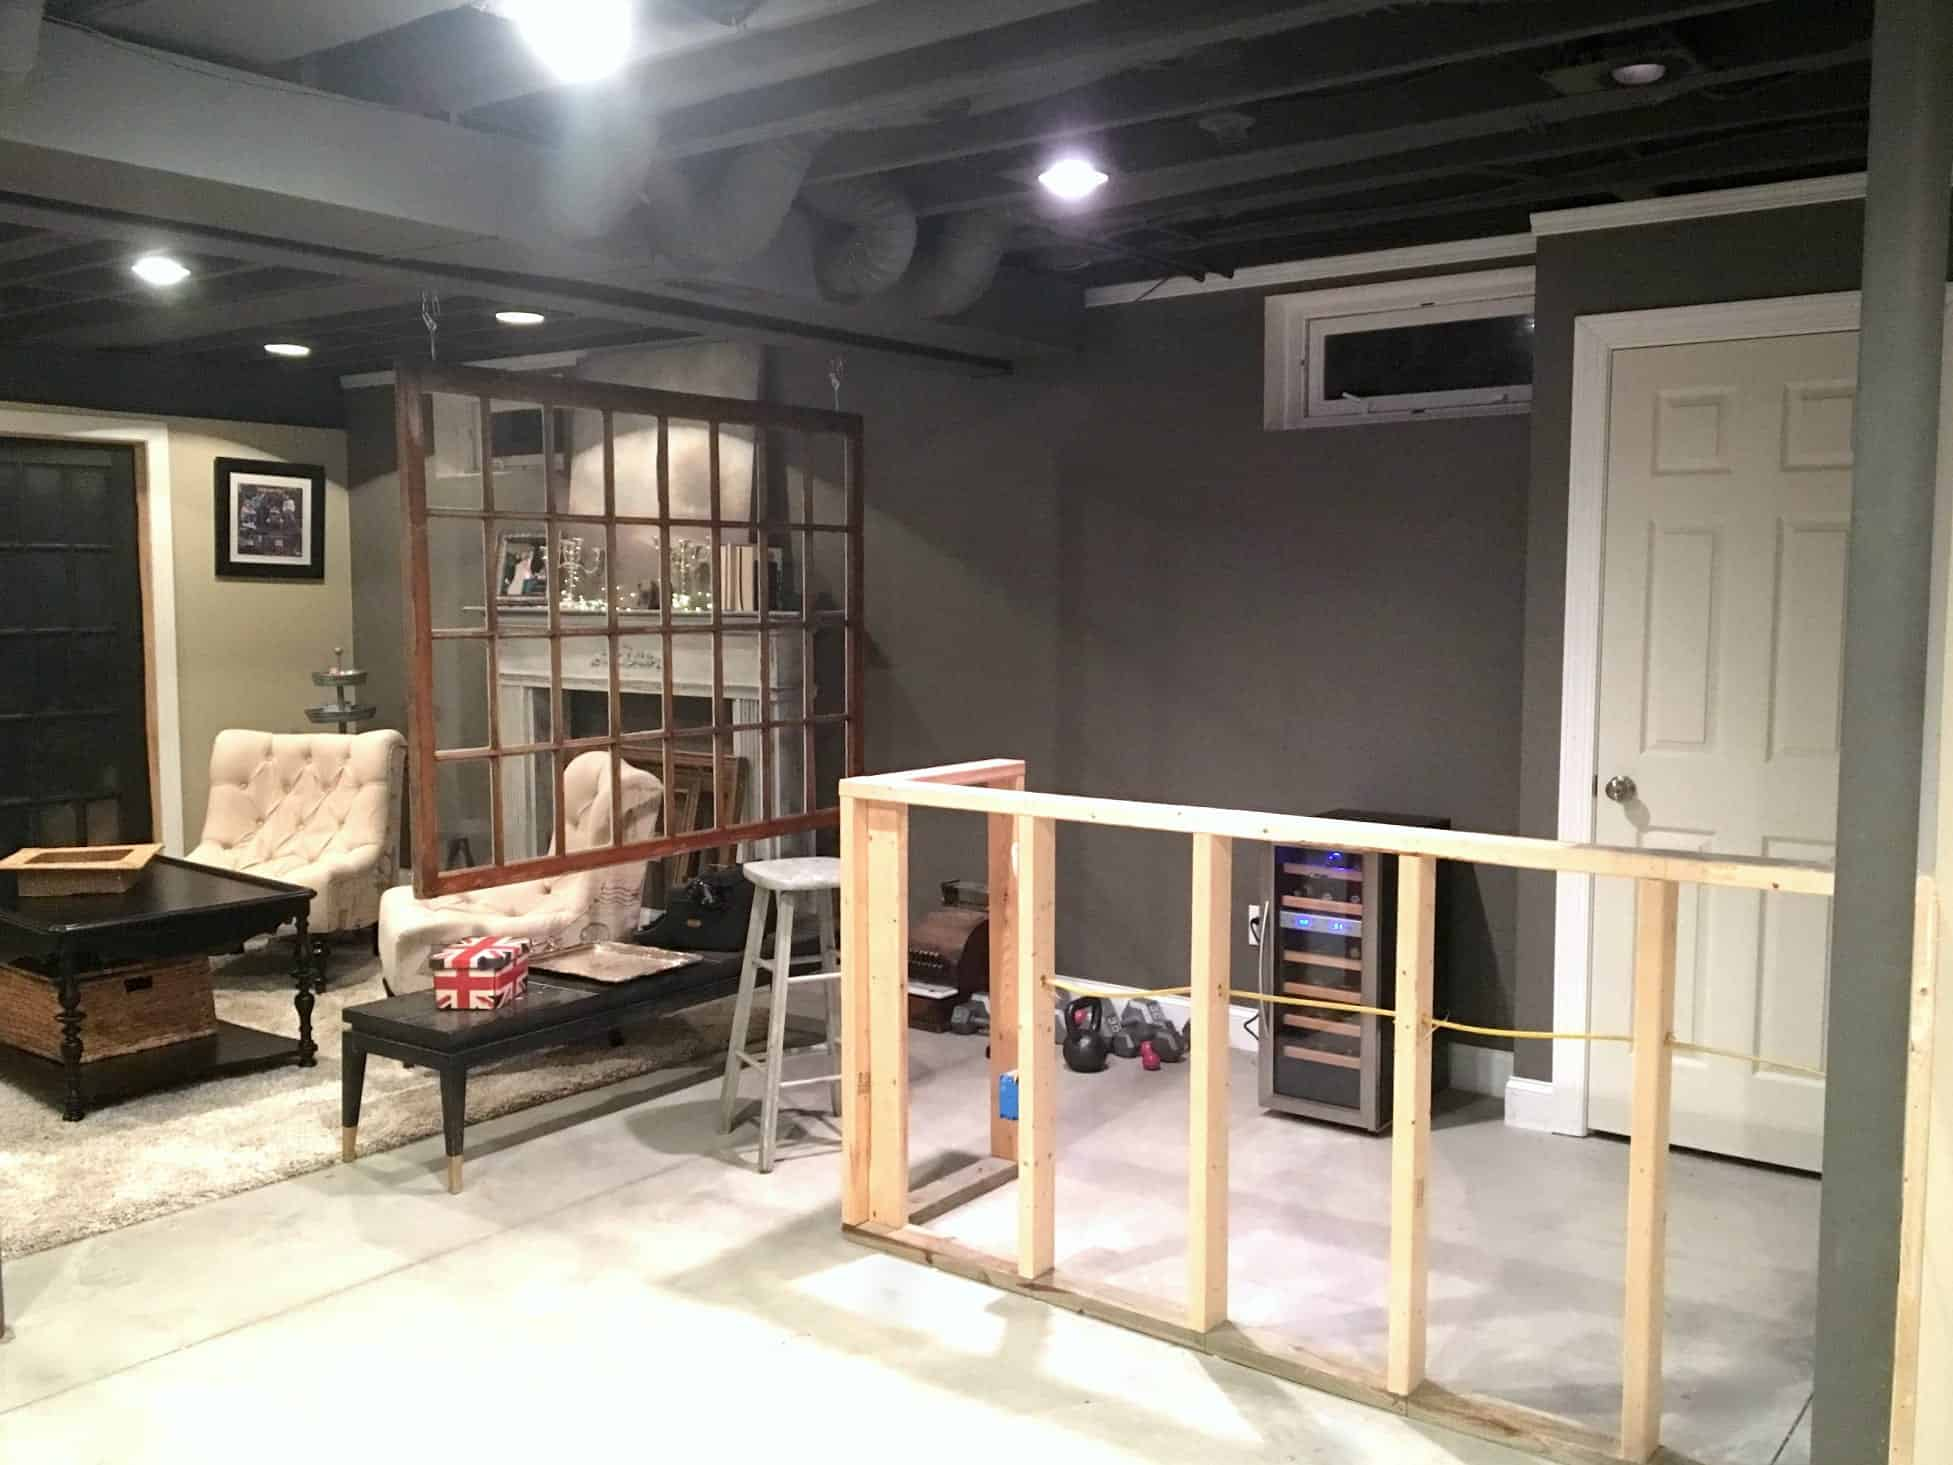 Diy decor industrial basement remodel - Unfinished basement design ...